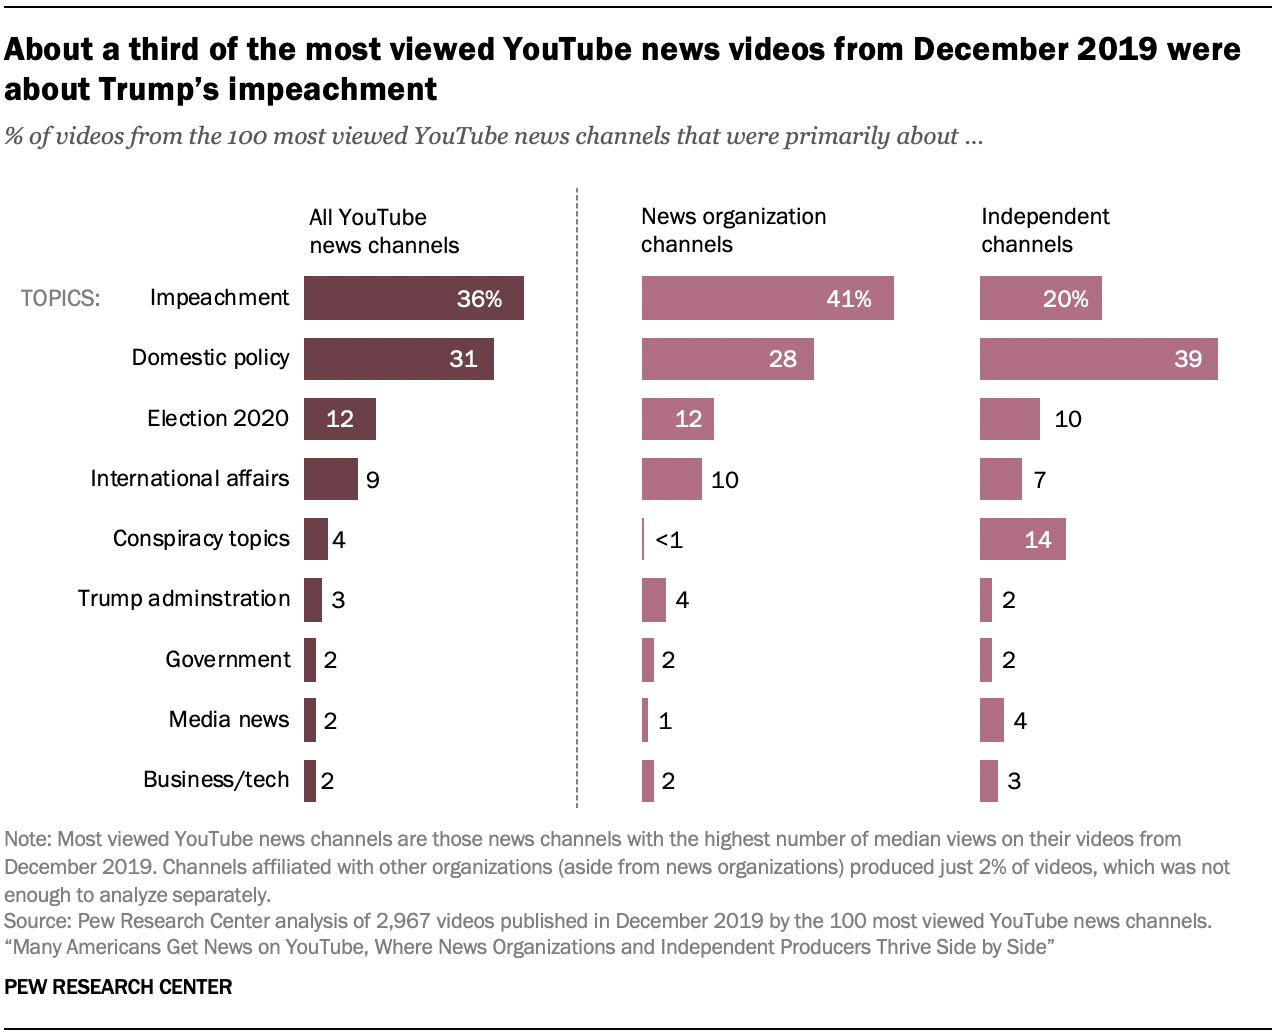 About a third of the most viewed YouTube news videos from December 2019 were about Trump's impeachment